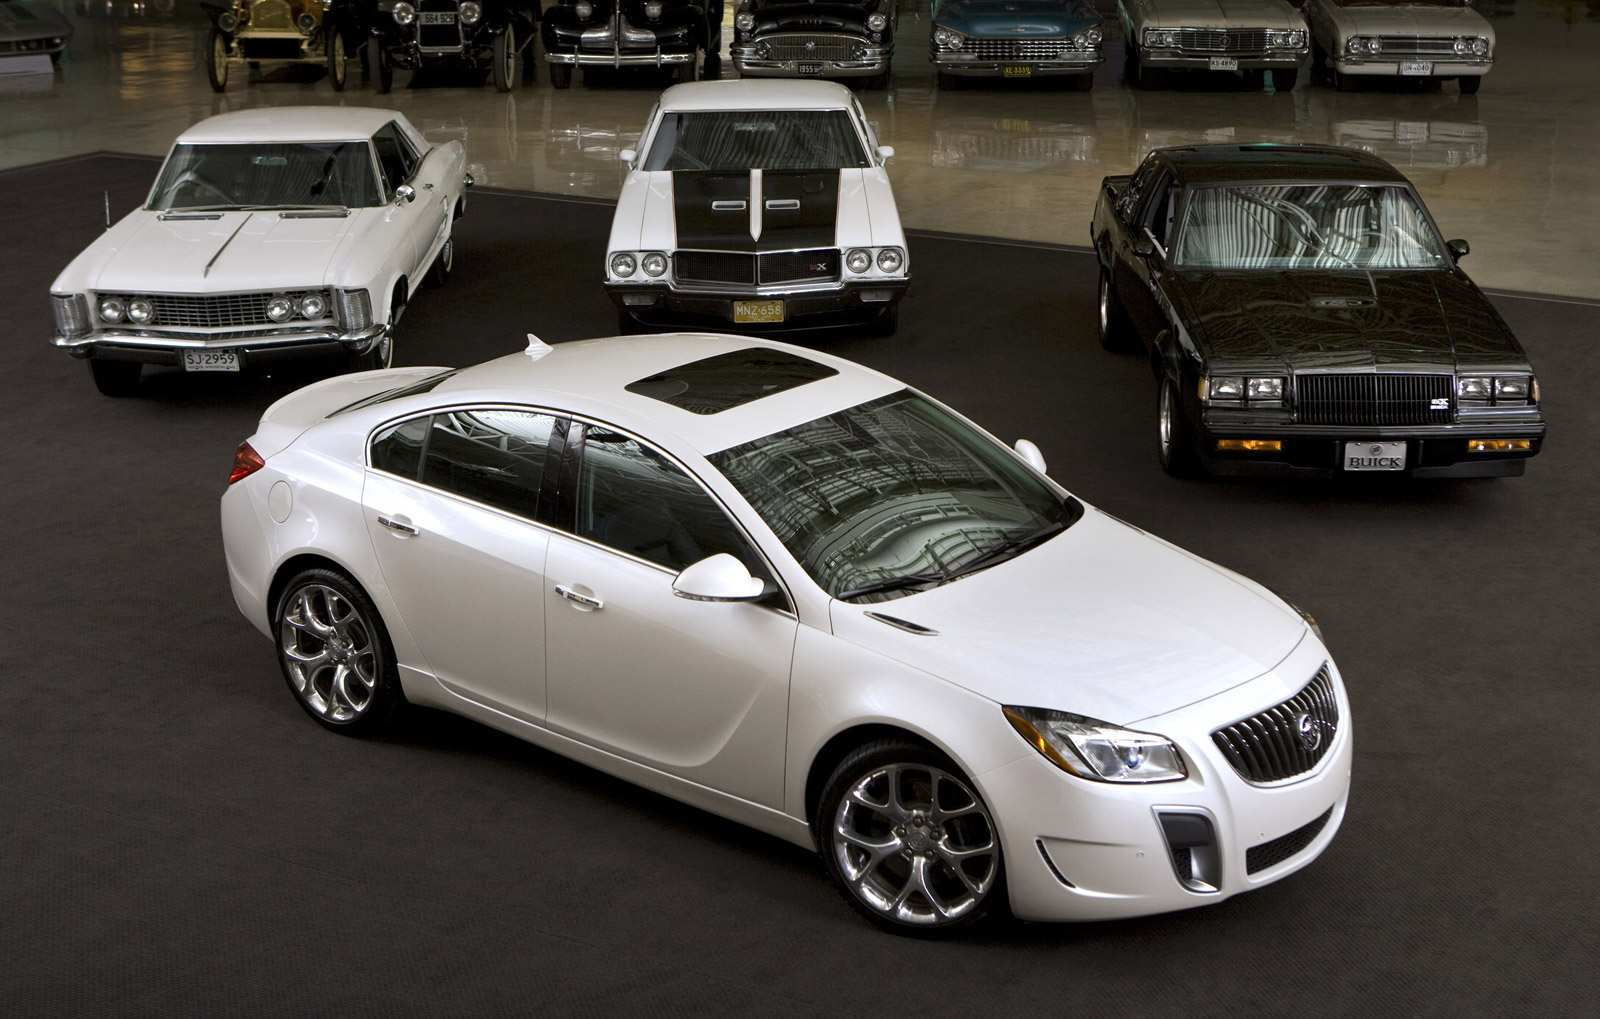 30 New Pictures Of The New Buick Grand National Images by Pictures Of The New Buick Grand National